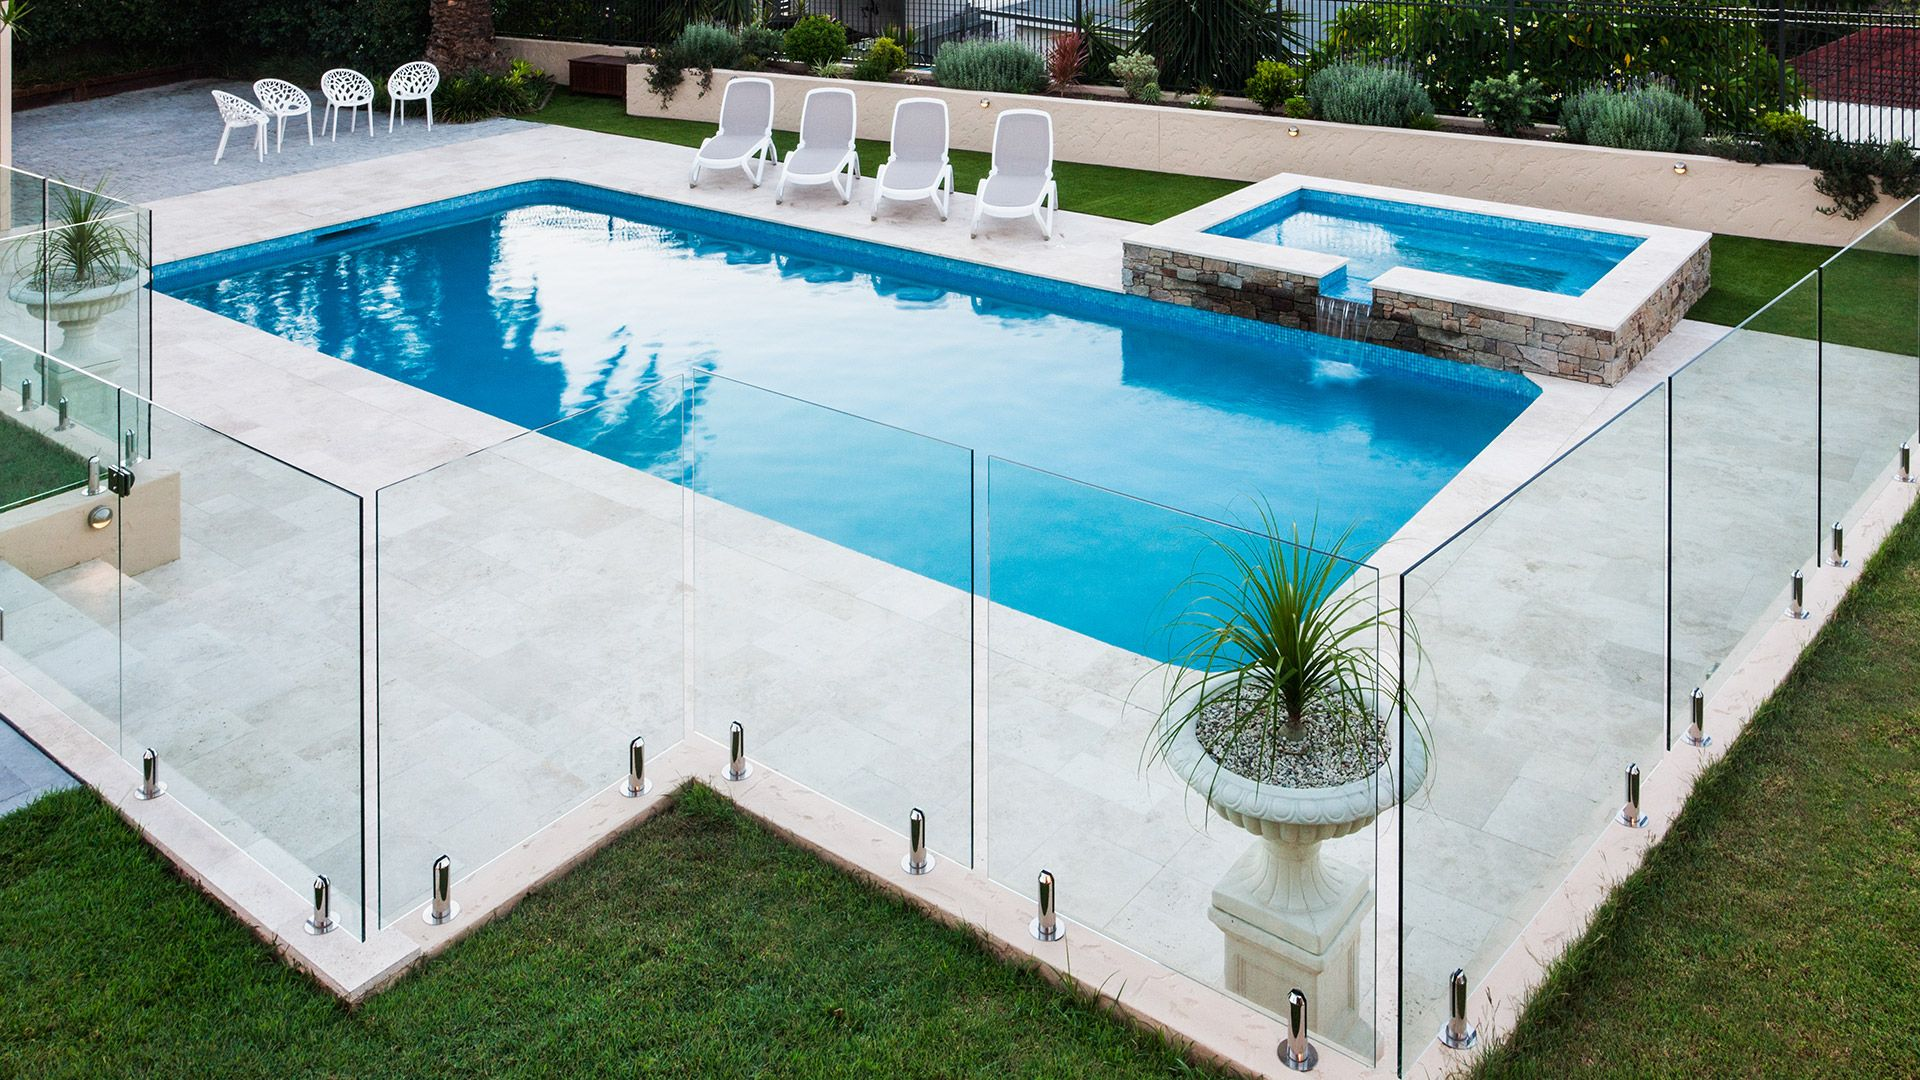 Types Of Pool Fencing As Well As Fencing Rules And Regulations In Melbourne Pool Patio Designs Cheap Inground Pool Fence Around Pool